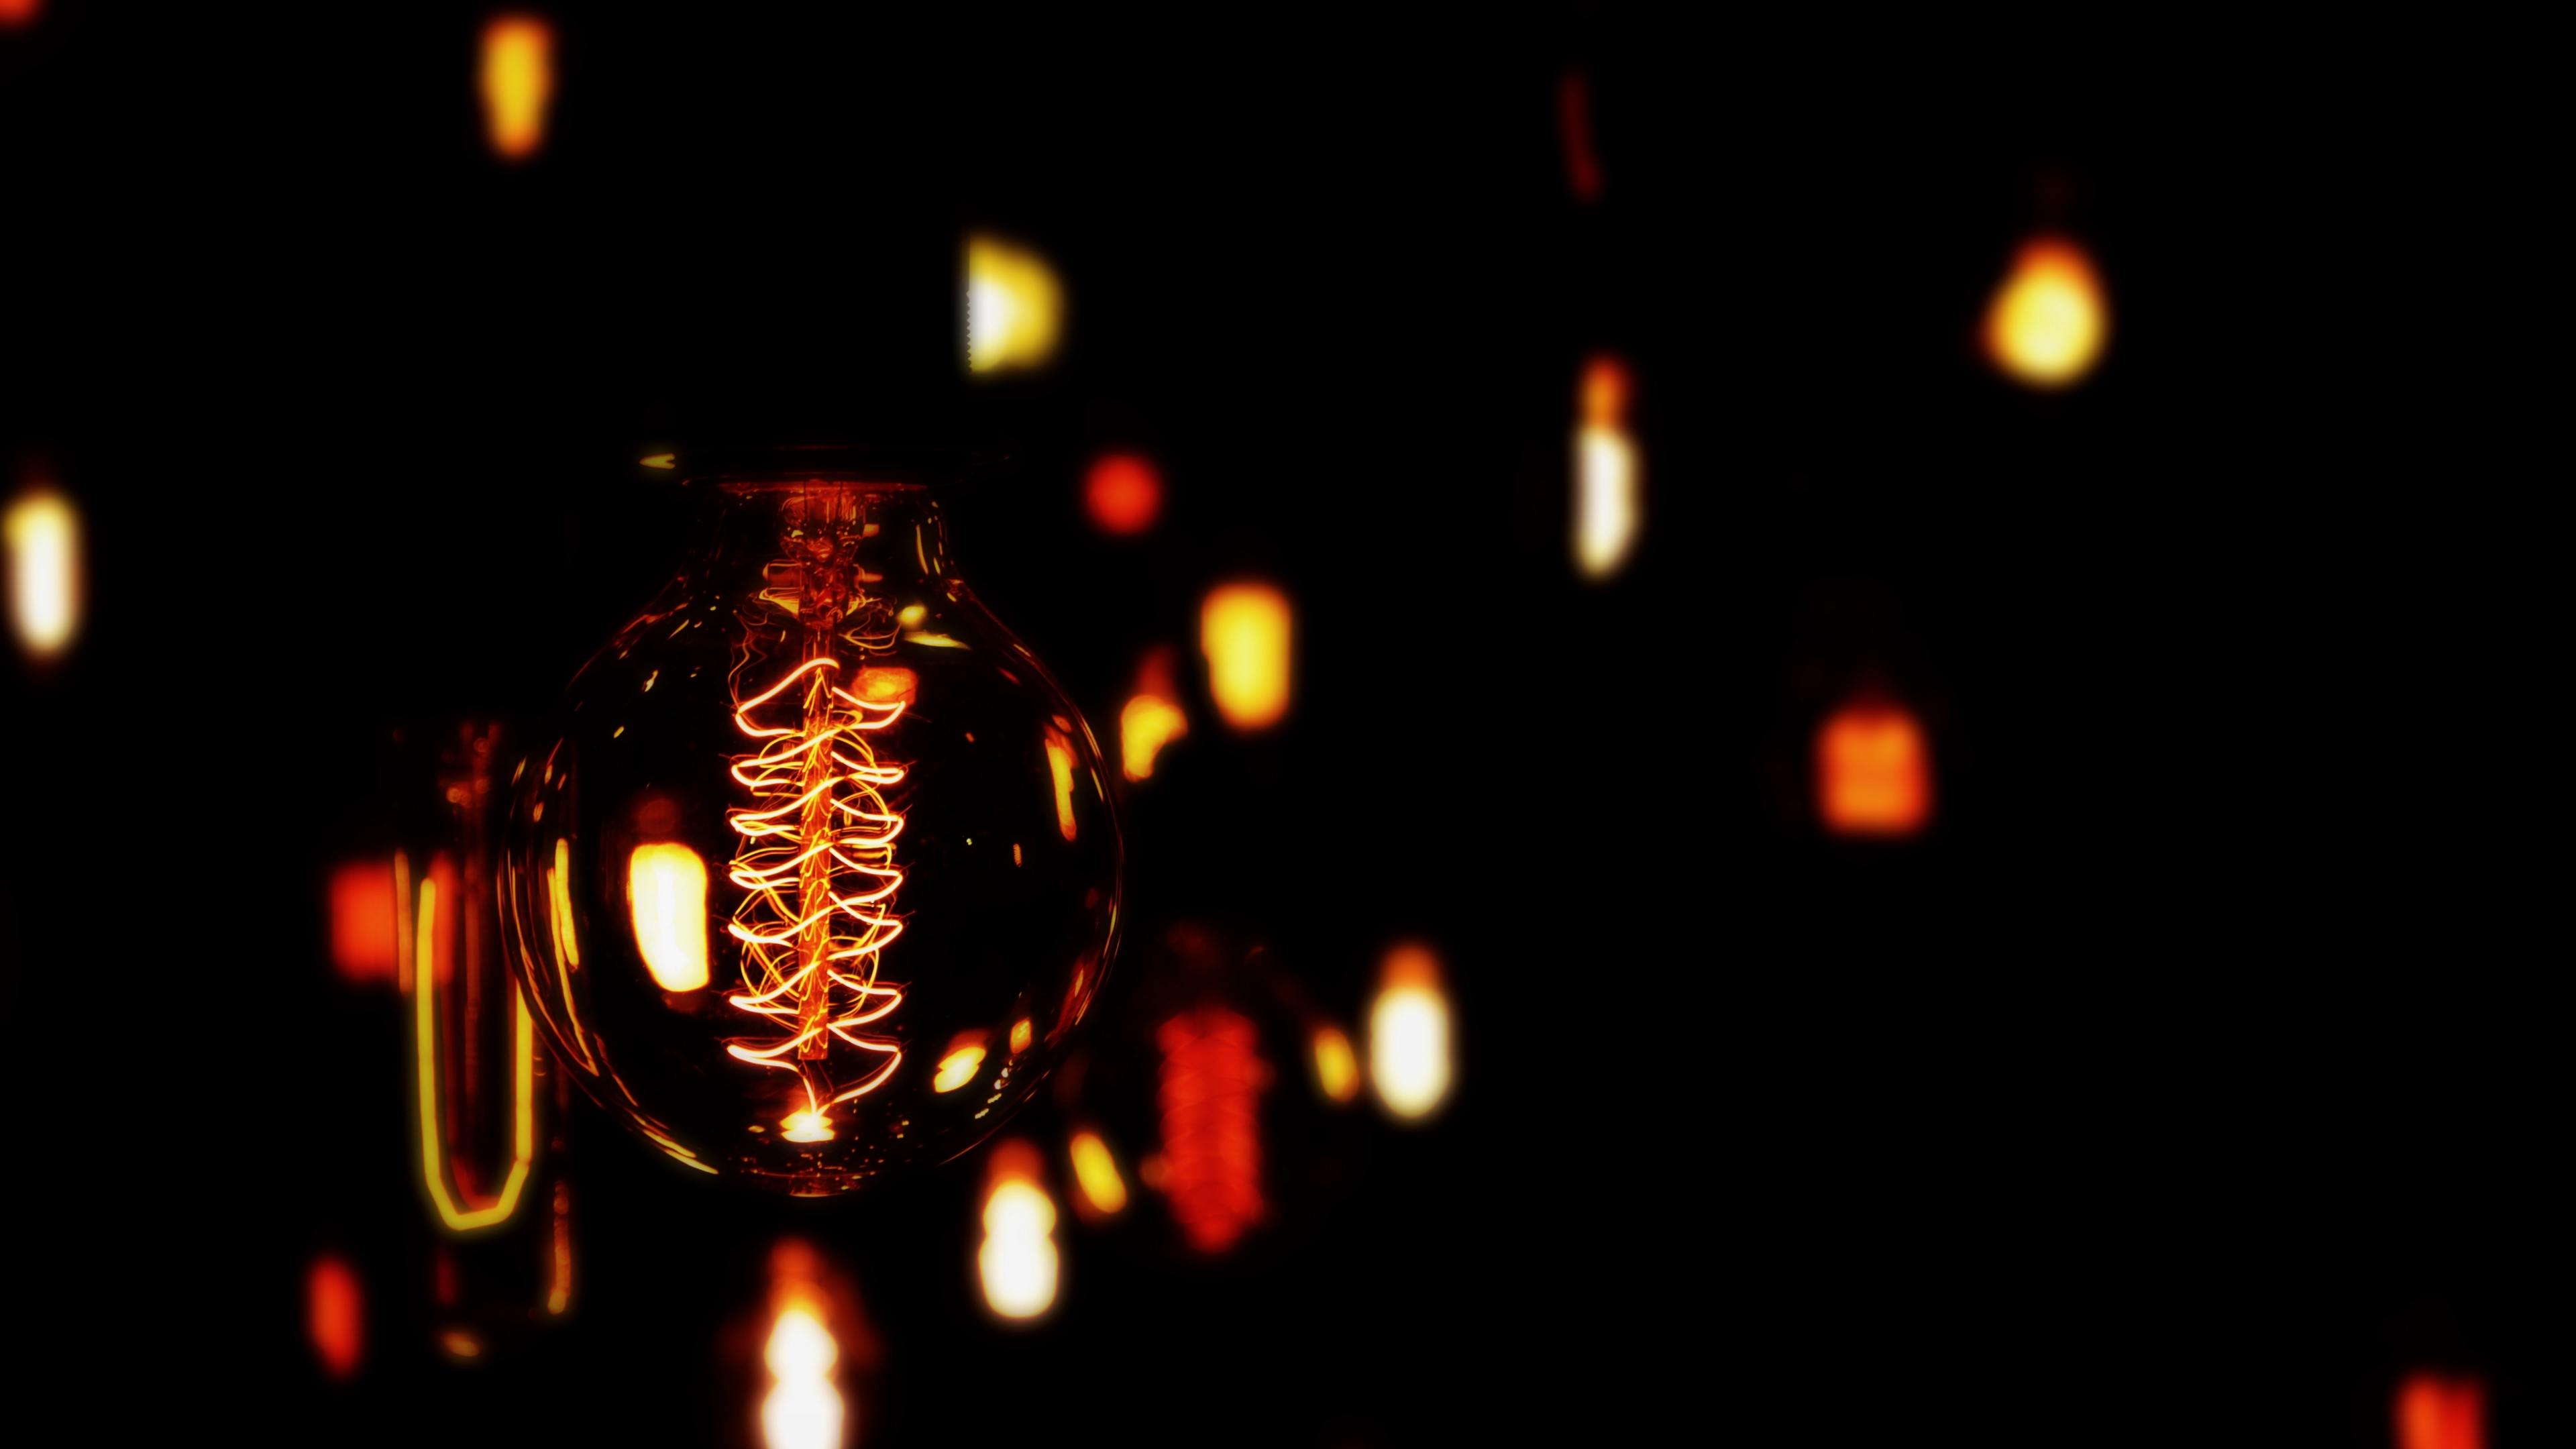 lightbulb electricity dark spiral bokeh 4k 1540575538 - lightbulb, electricity, dark, spiral, bokeh 4k - lightbulb, electricity, Dark